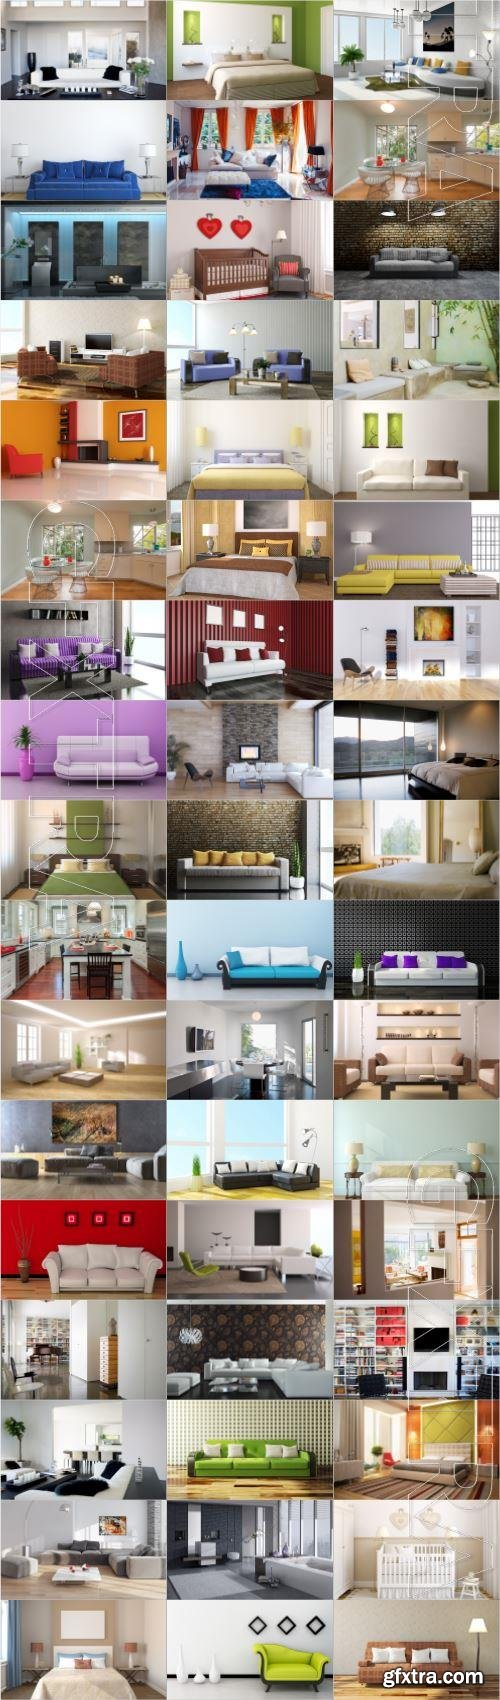 Modern interior large selection of stock photos